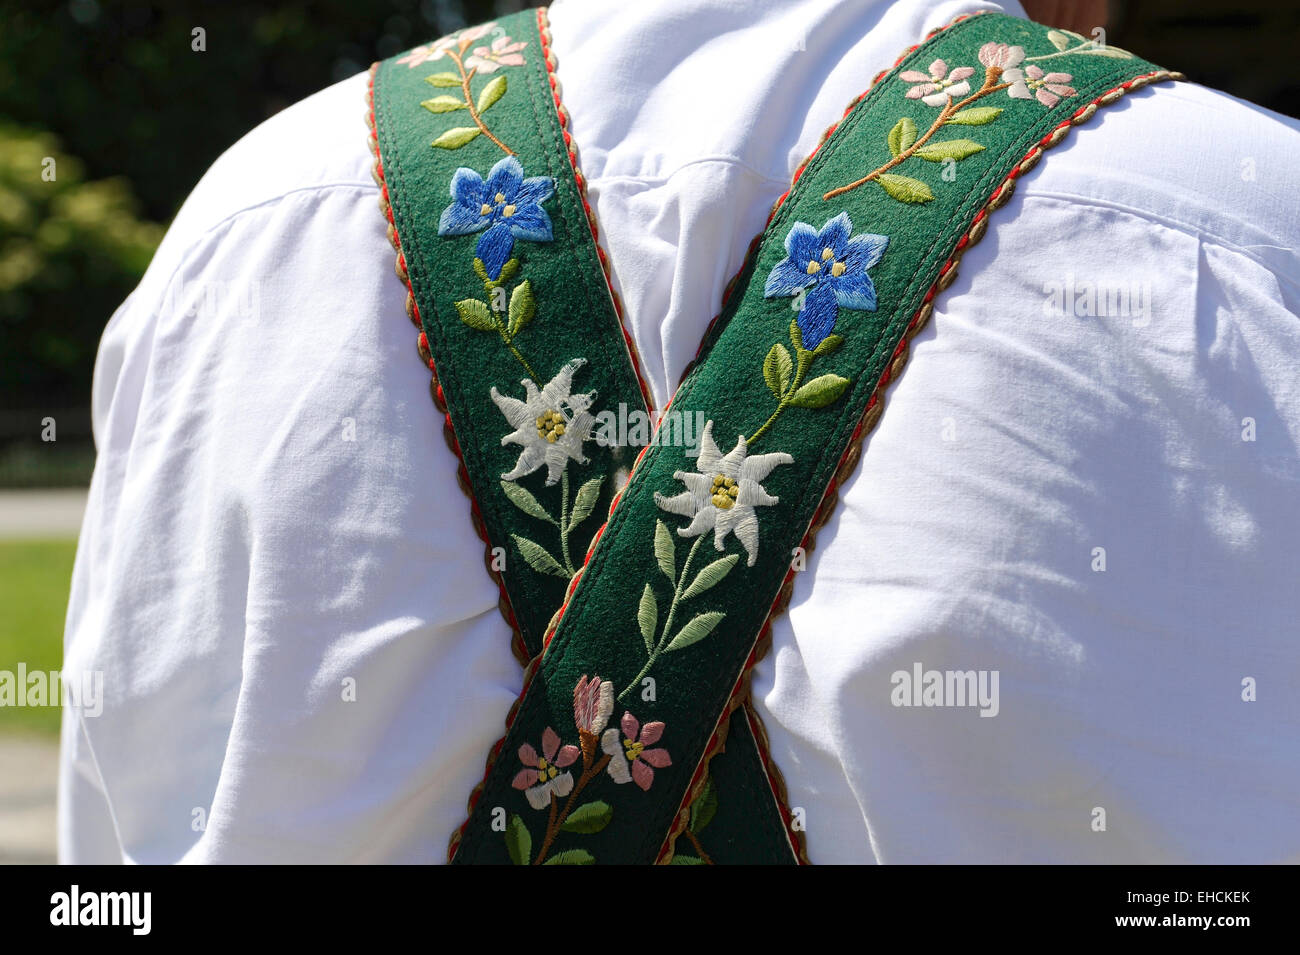 Suspenders embroidered with gentian and edelweiss flowers, lederhosen, Upper Bavaria, Bavaria, Germany - Stock Image